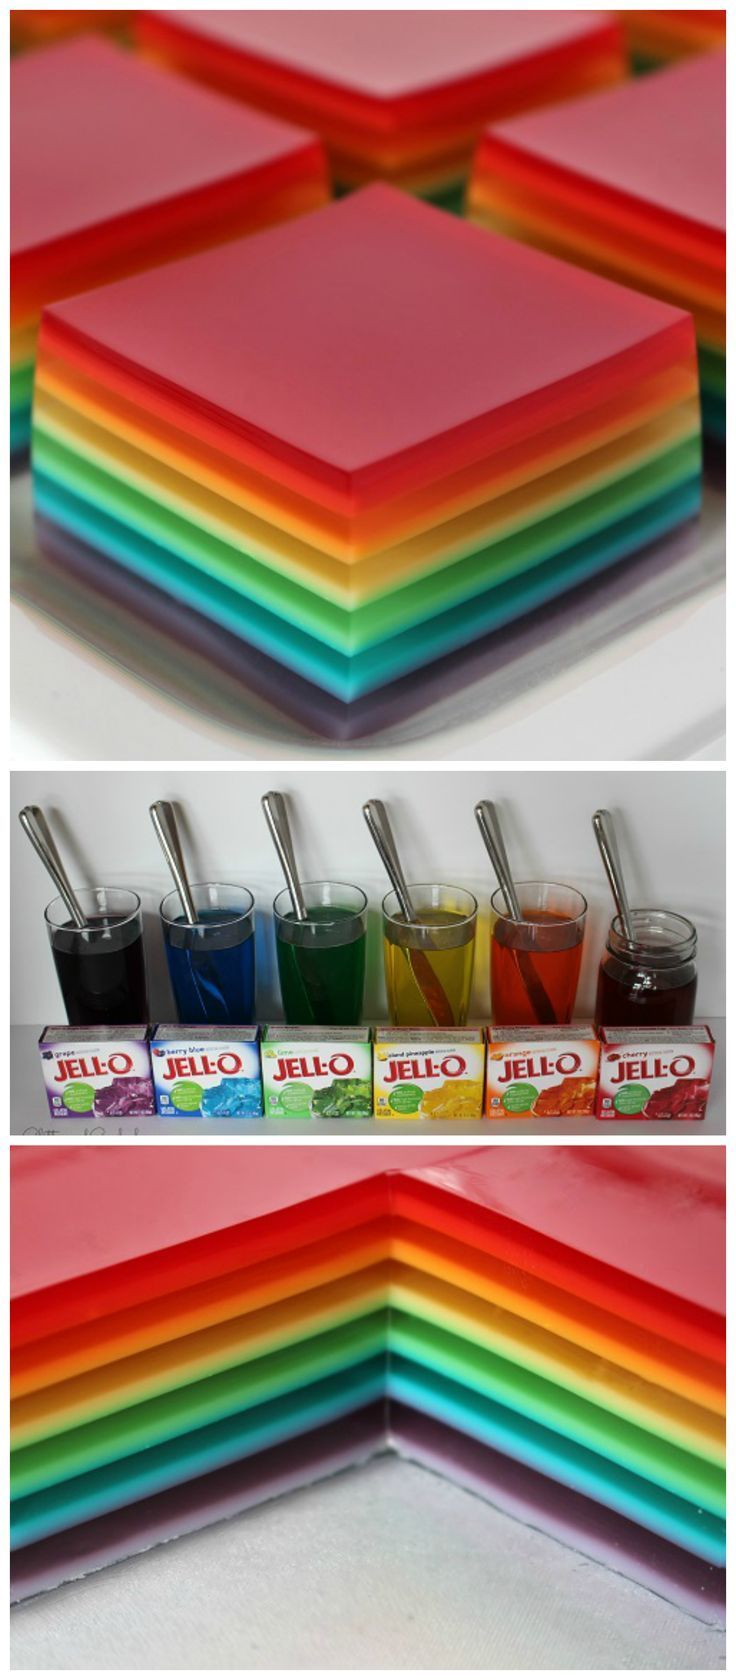 Rainbow jello jigglers for st. Patrick's day! Such a cute treat for kids.